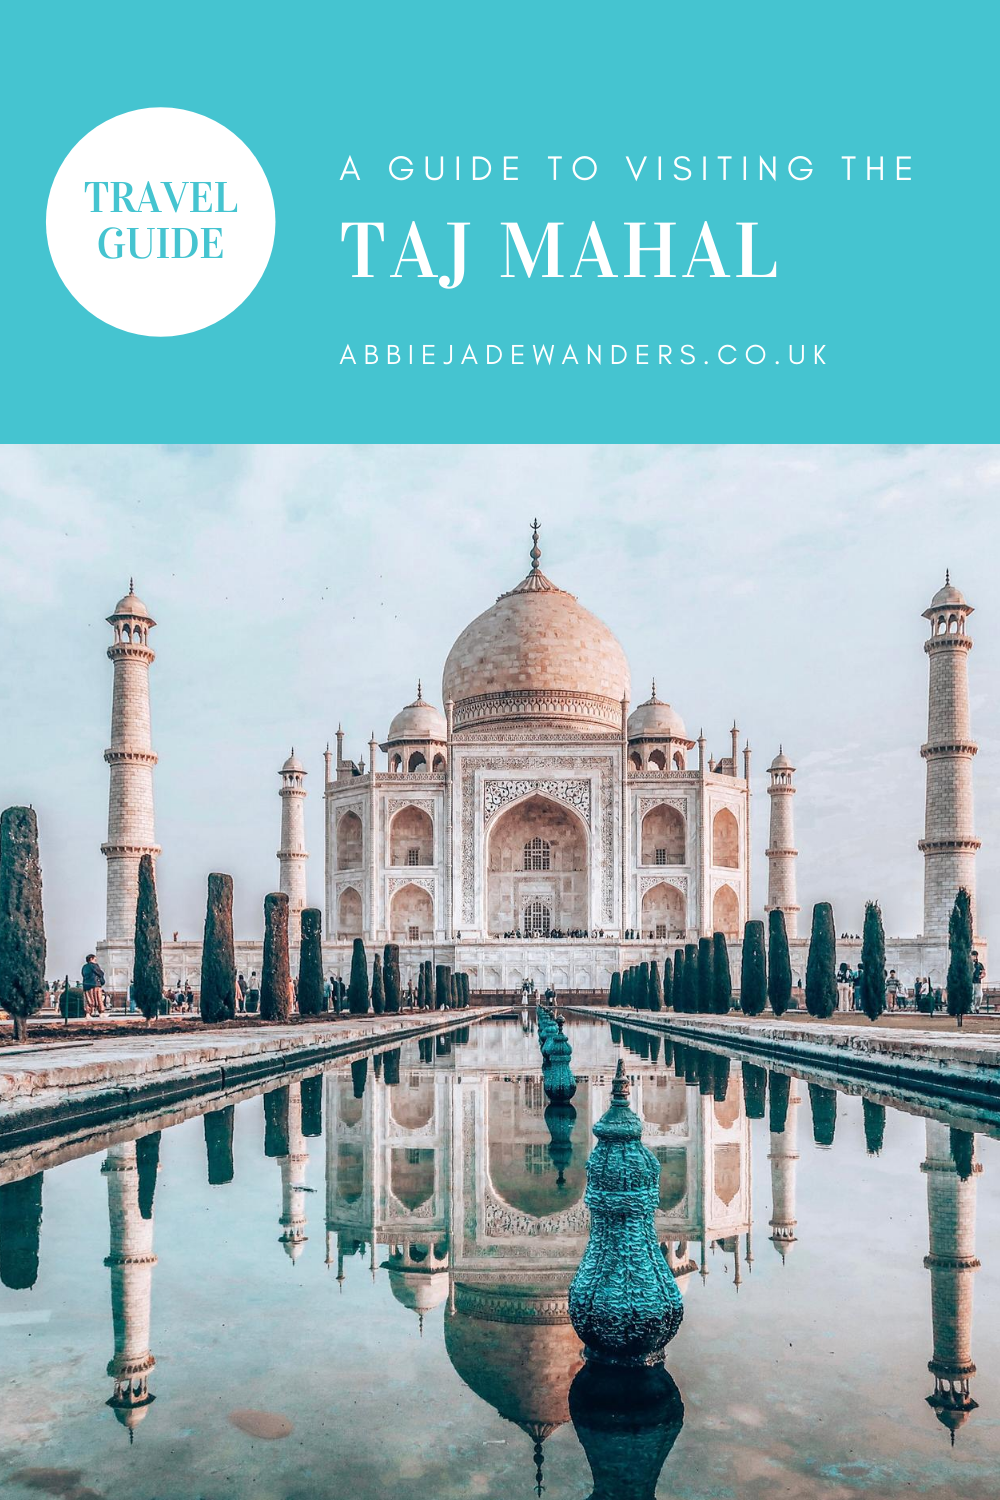 All the tips you need for visiting the Taj Mahal and taking those gorgeous photos of this breathtakingly beautiful wonder of the world. #tajmahal #indiaclicks #discoverindia #incredibleindia #travelblogger